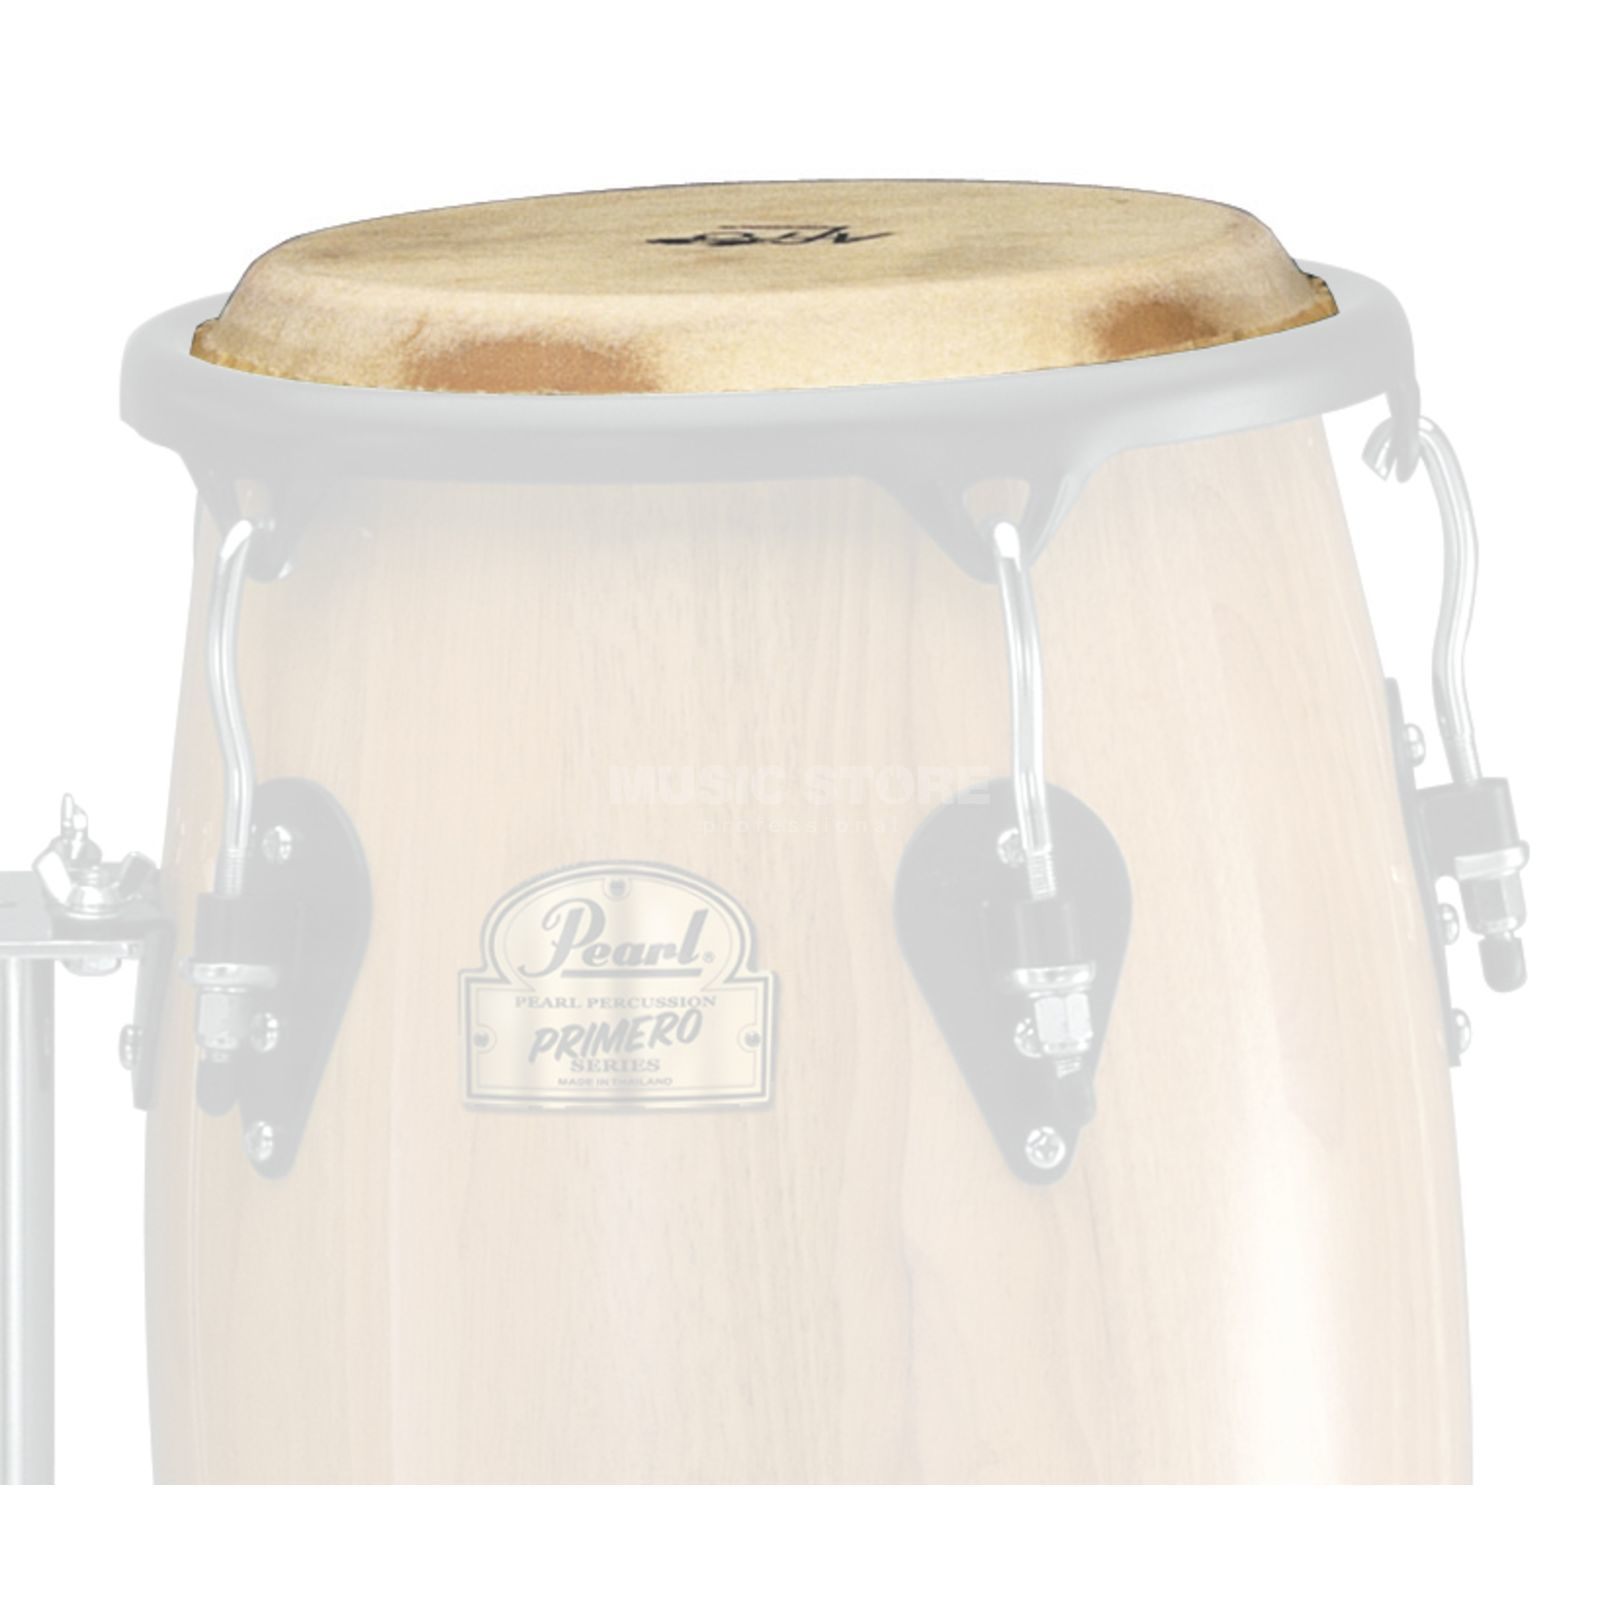 "Pearl Conga Head PH110PW, 11"", f. Primero Wood Produktbillede"